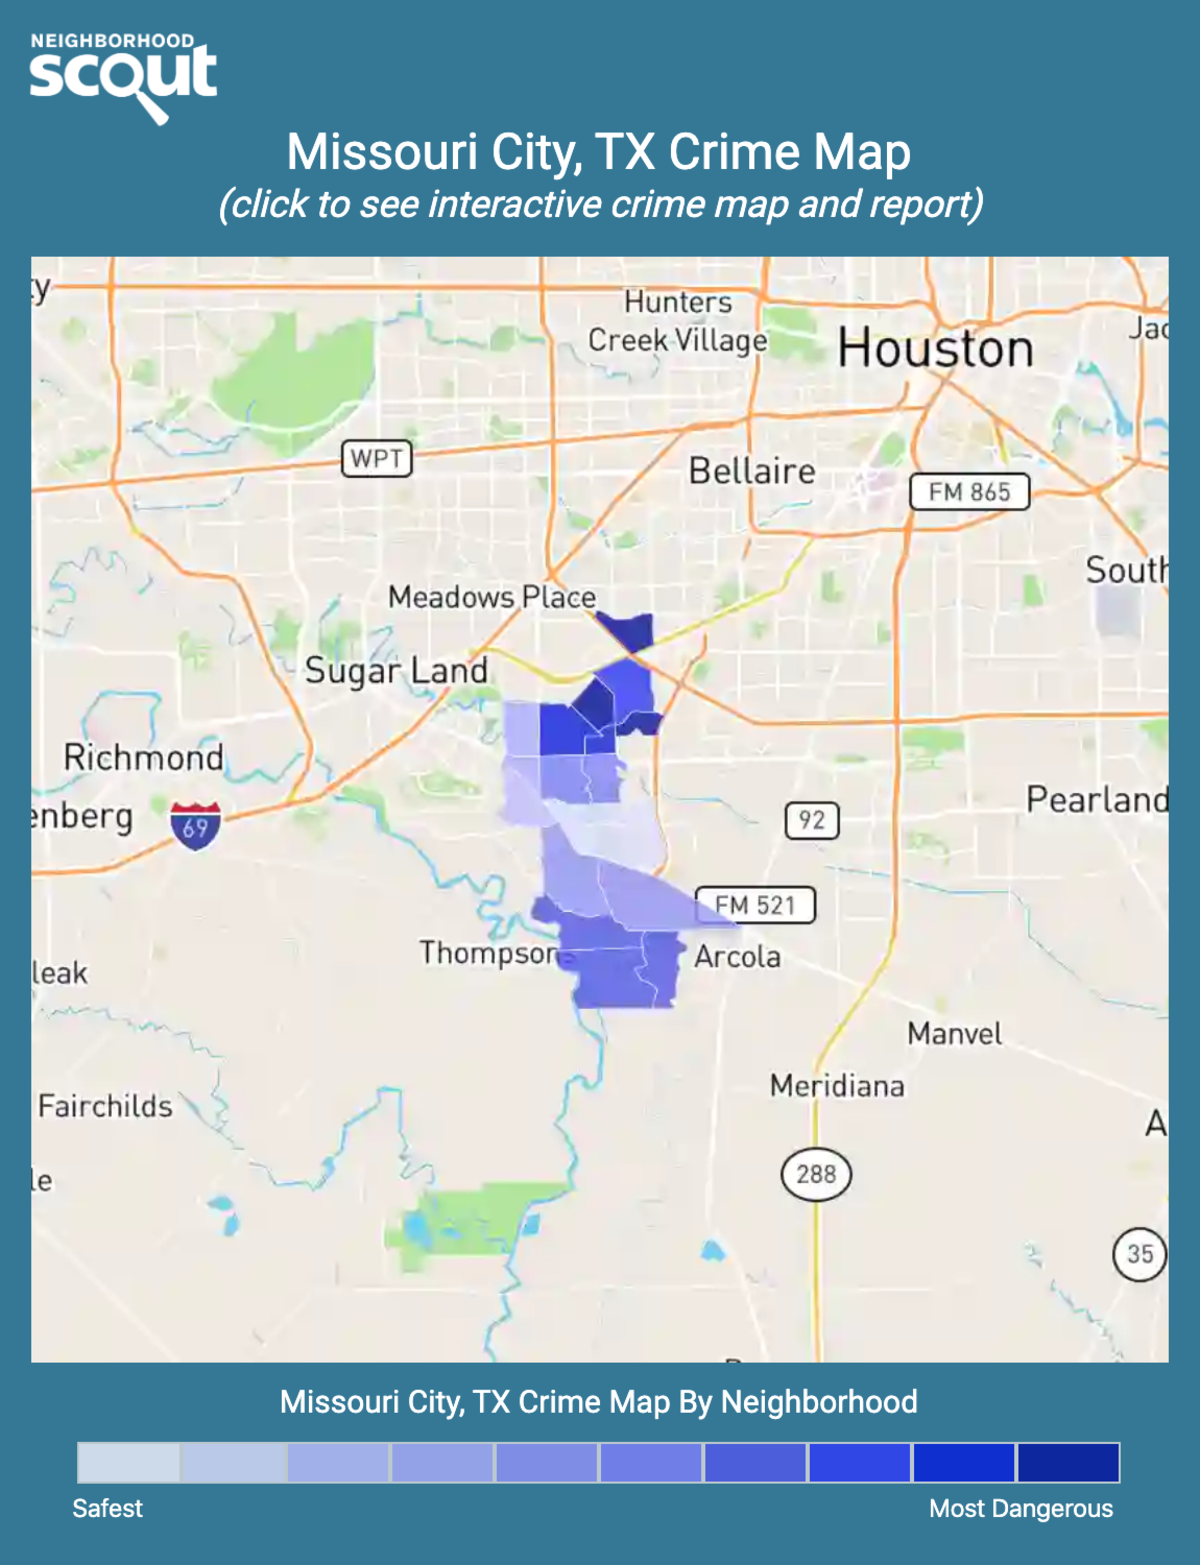 Missouri City, Texas crime map